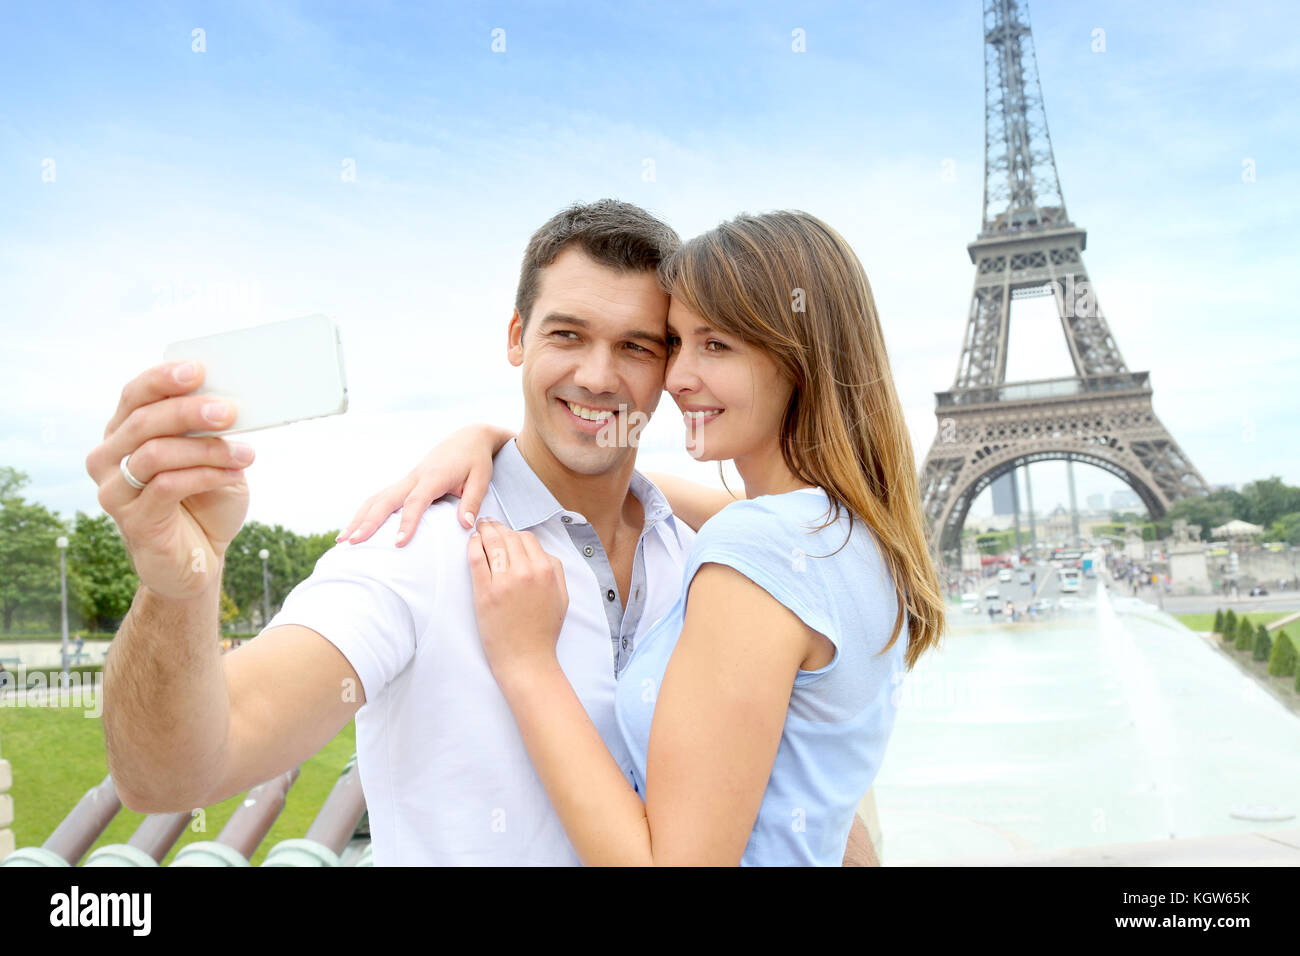 Couple in Paris taking pictures in front of Eiffel Tower - Stock Image